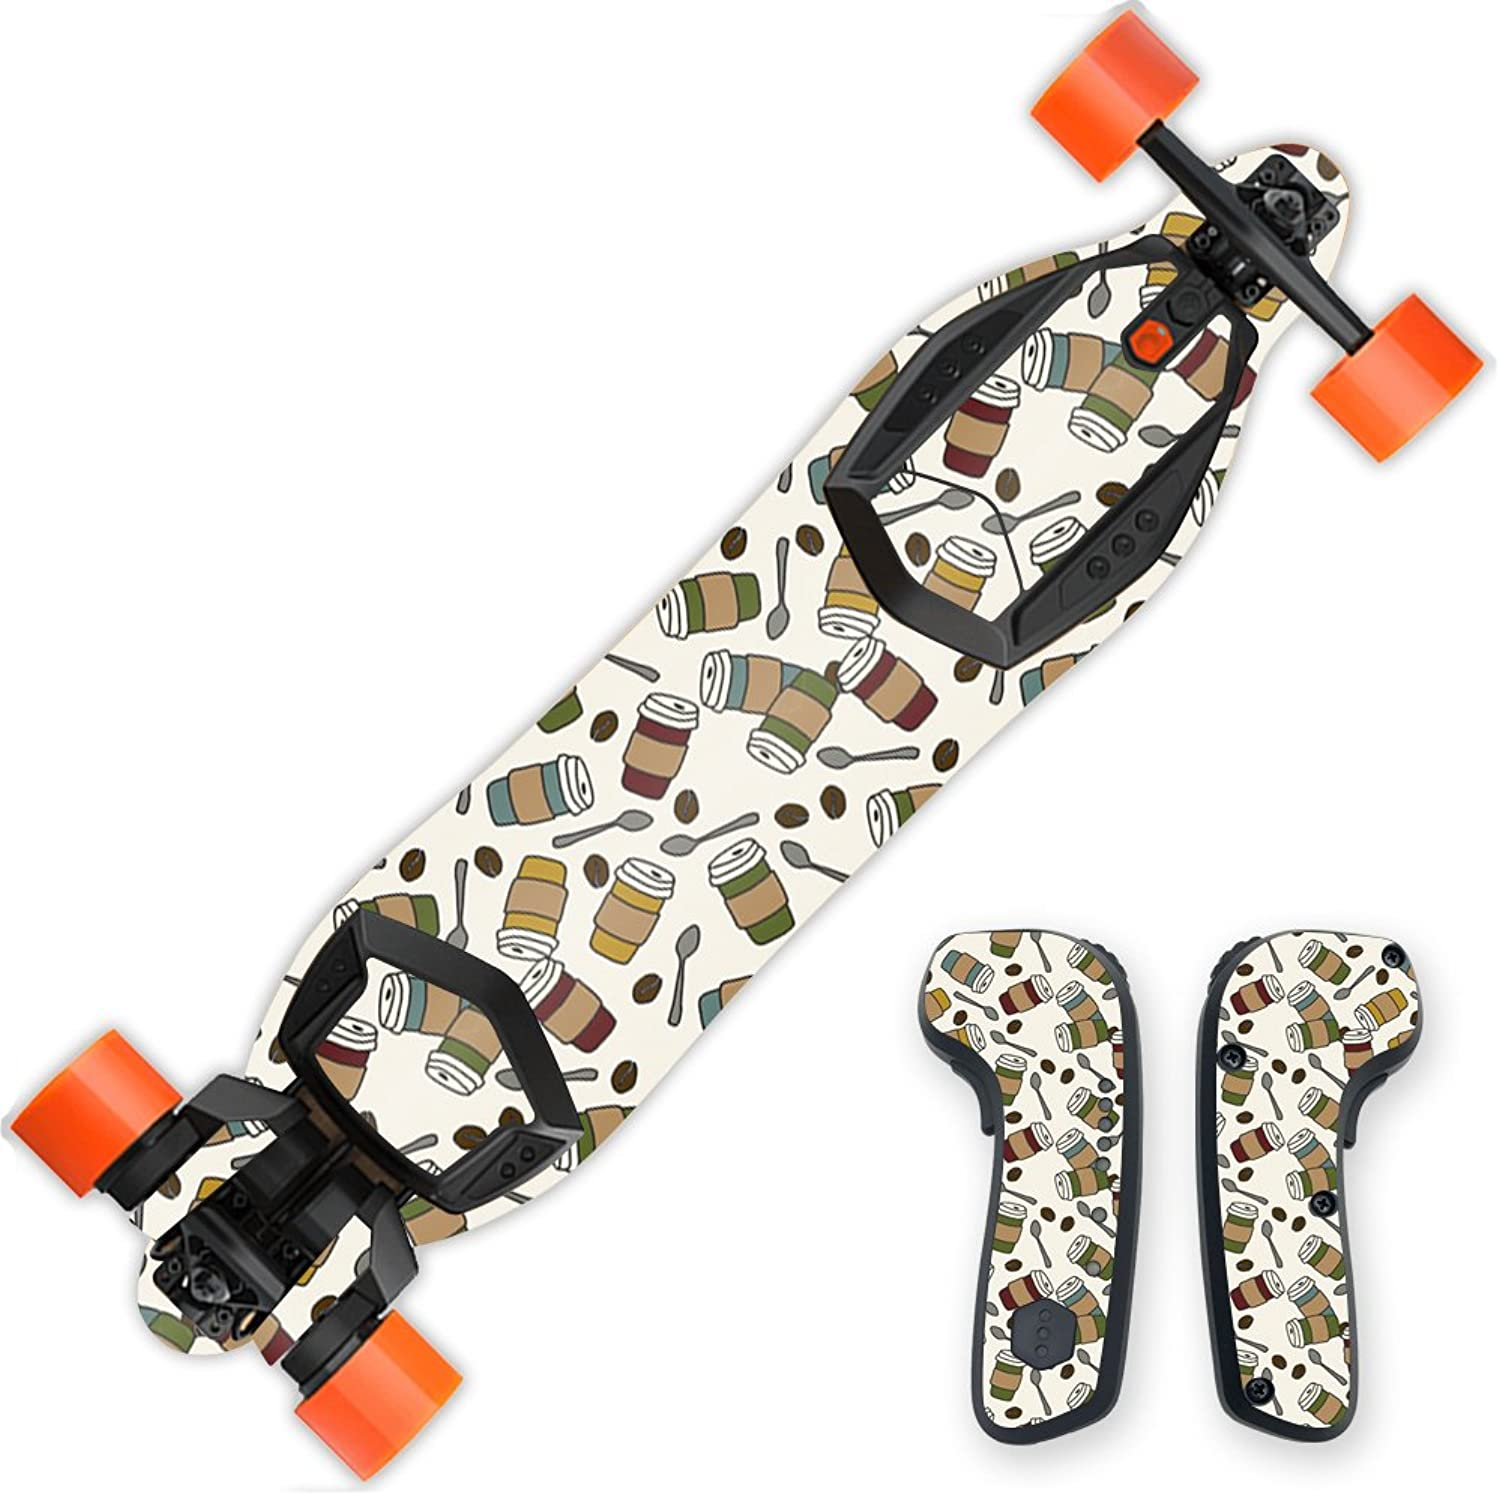 MightySkins Skin Compatible with Boosted Board wrap Cover Sticker Skins Coffee